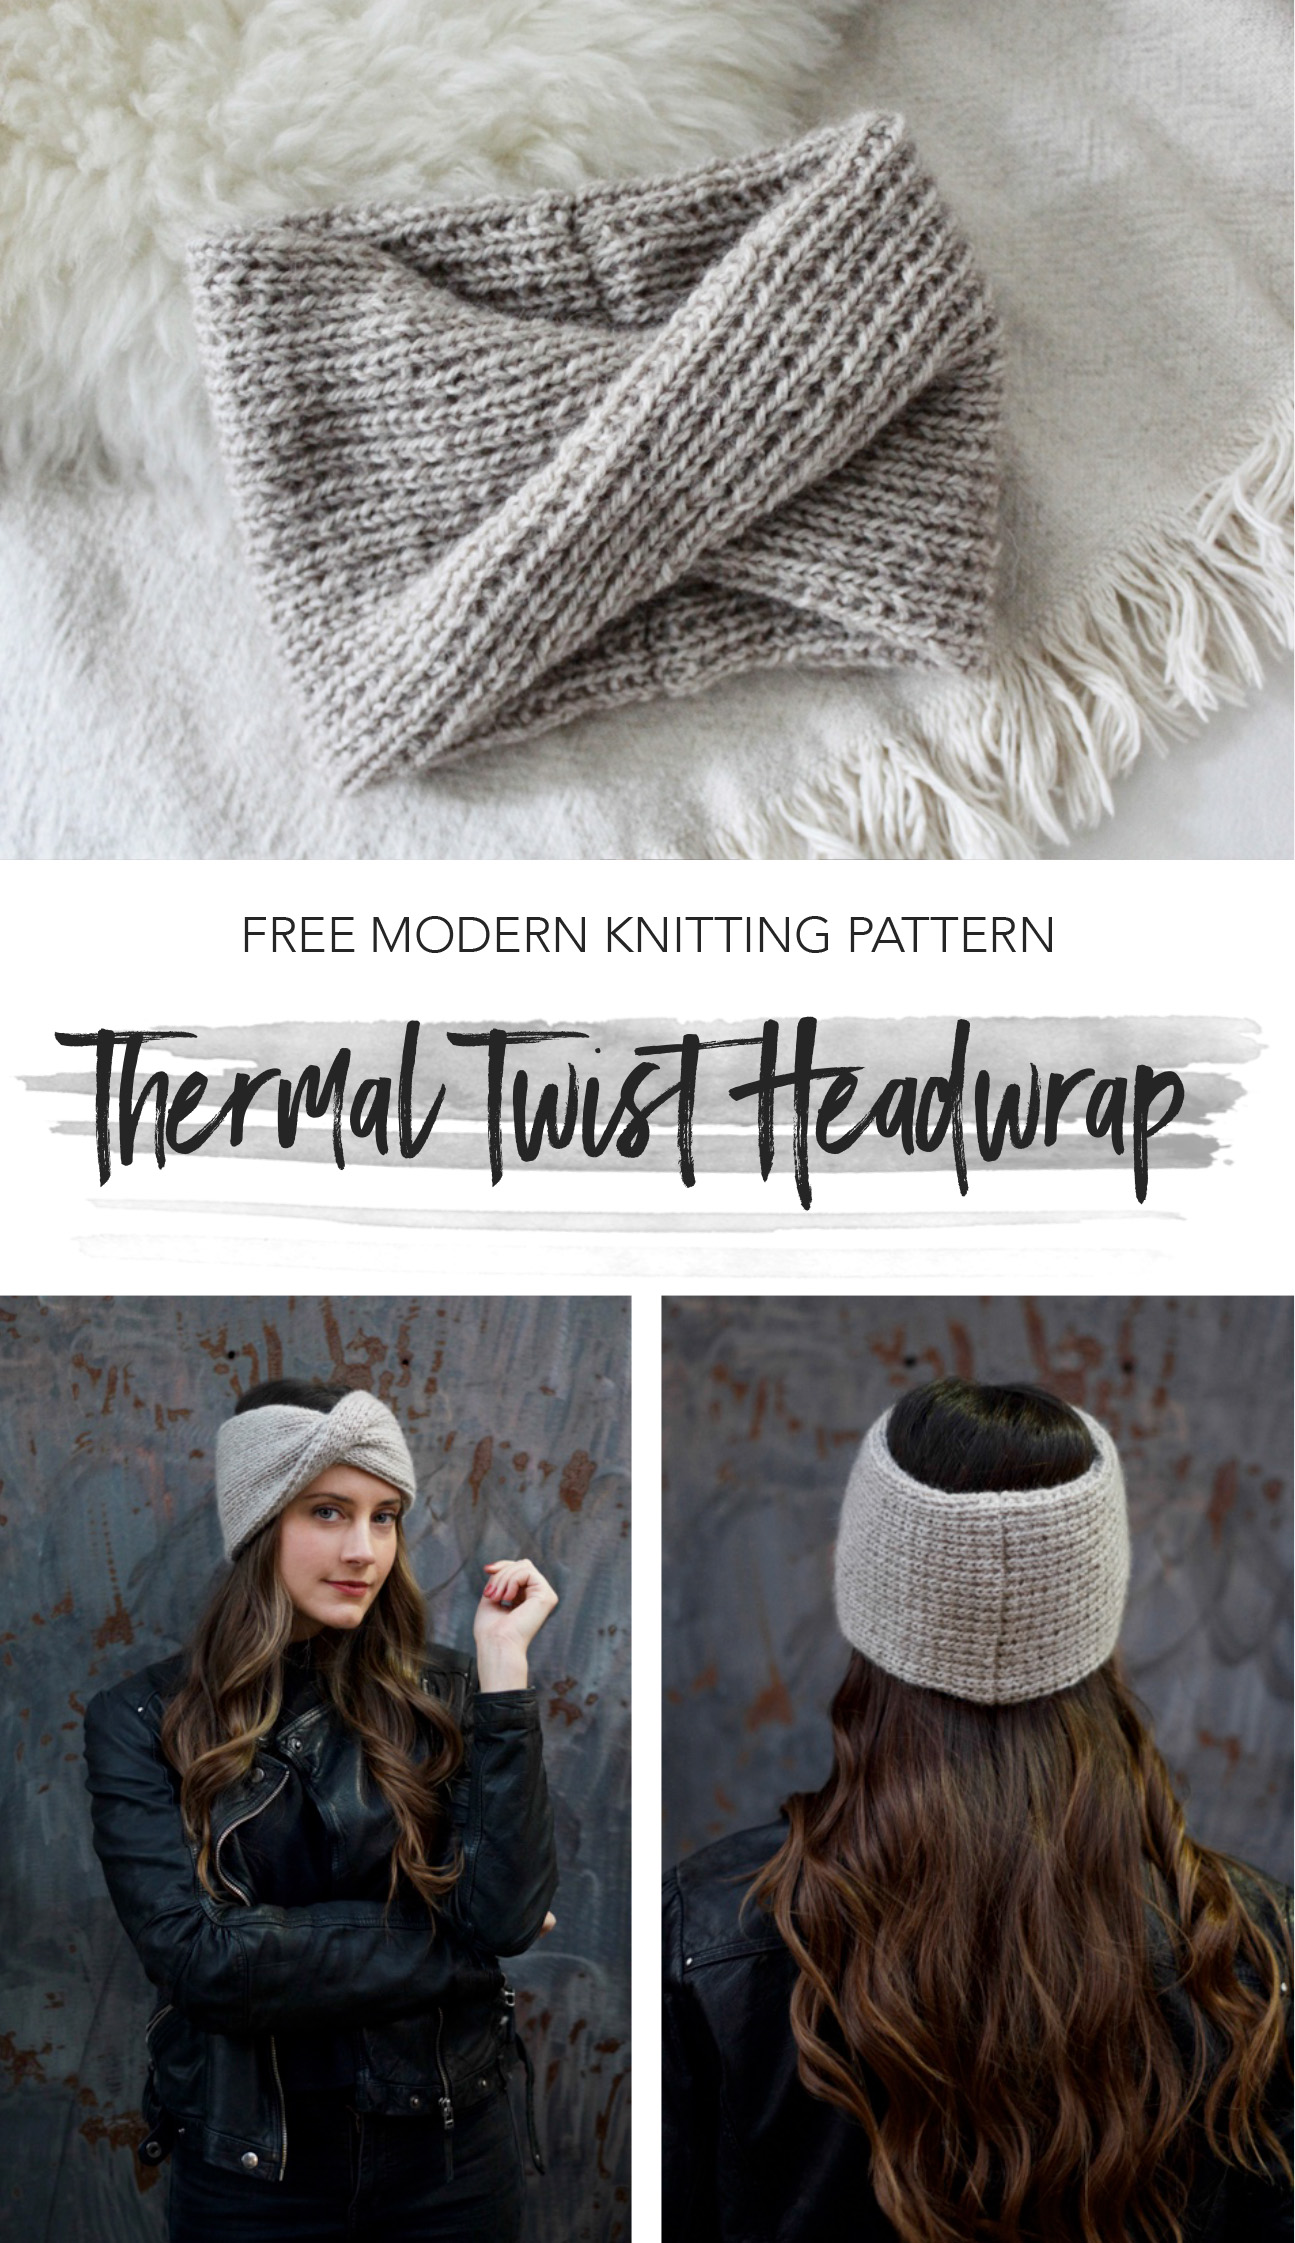 Thermal Twist Headwrap pattern by Two of Wands